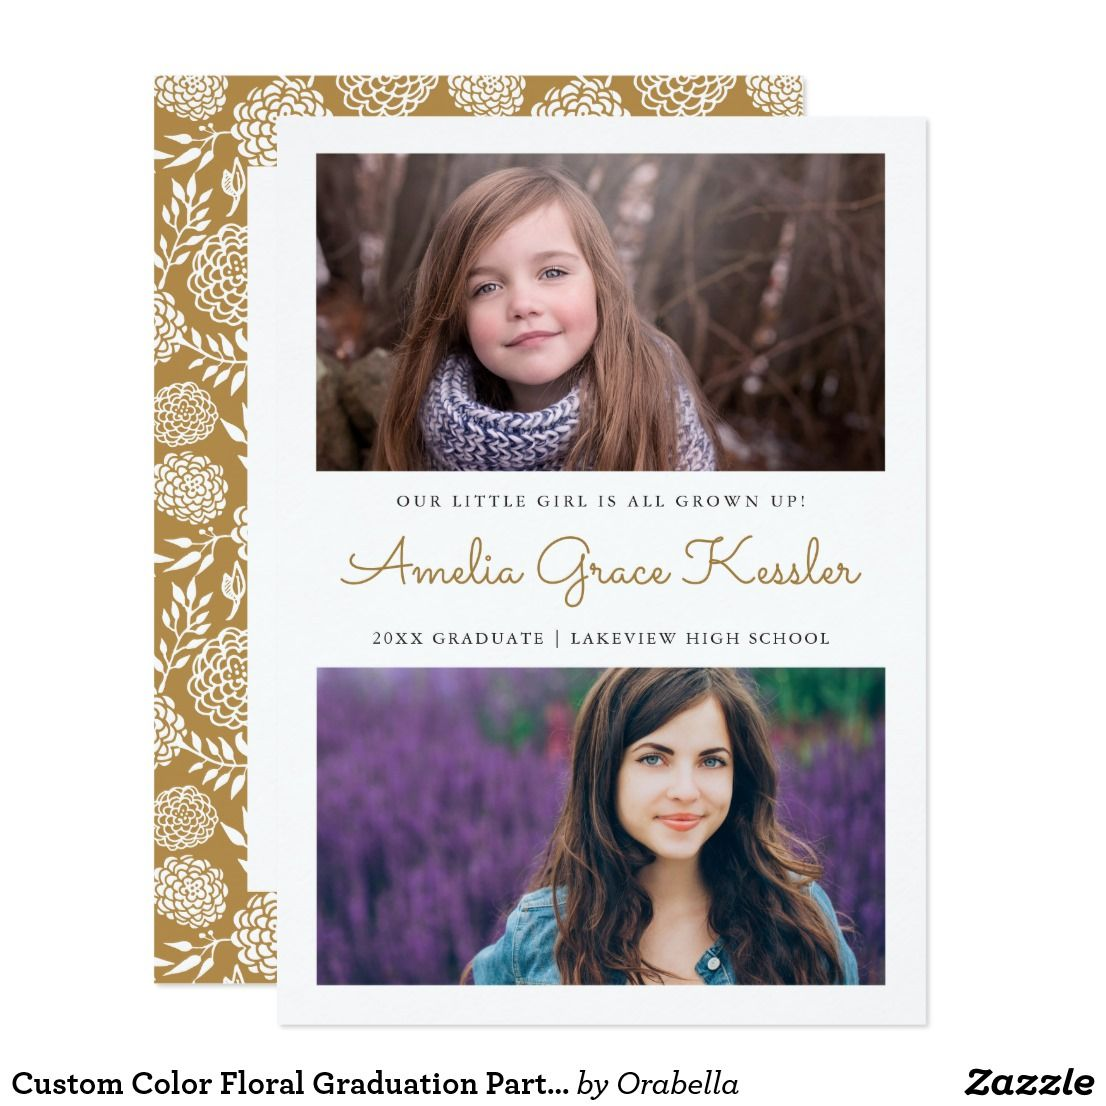 Custom Color Floral Graduation Party Invitation | Party invitations